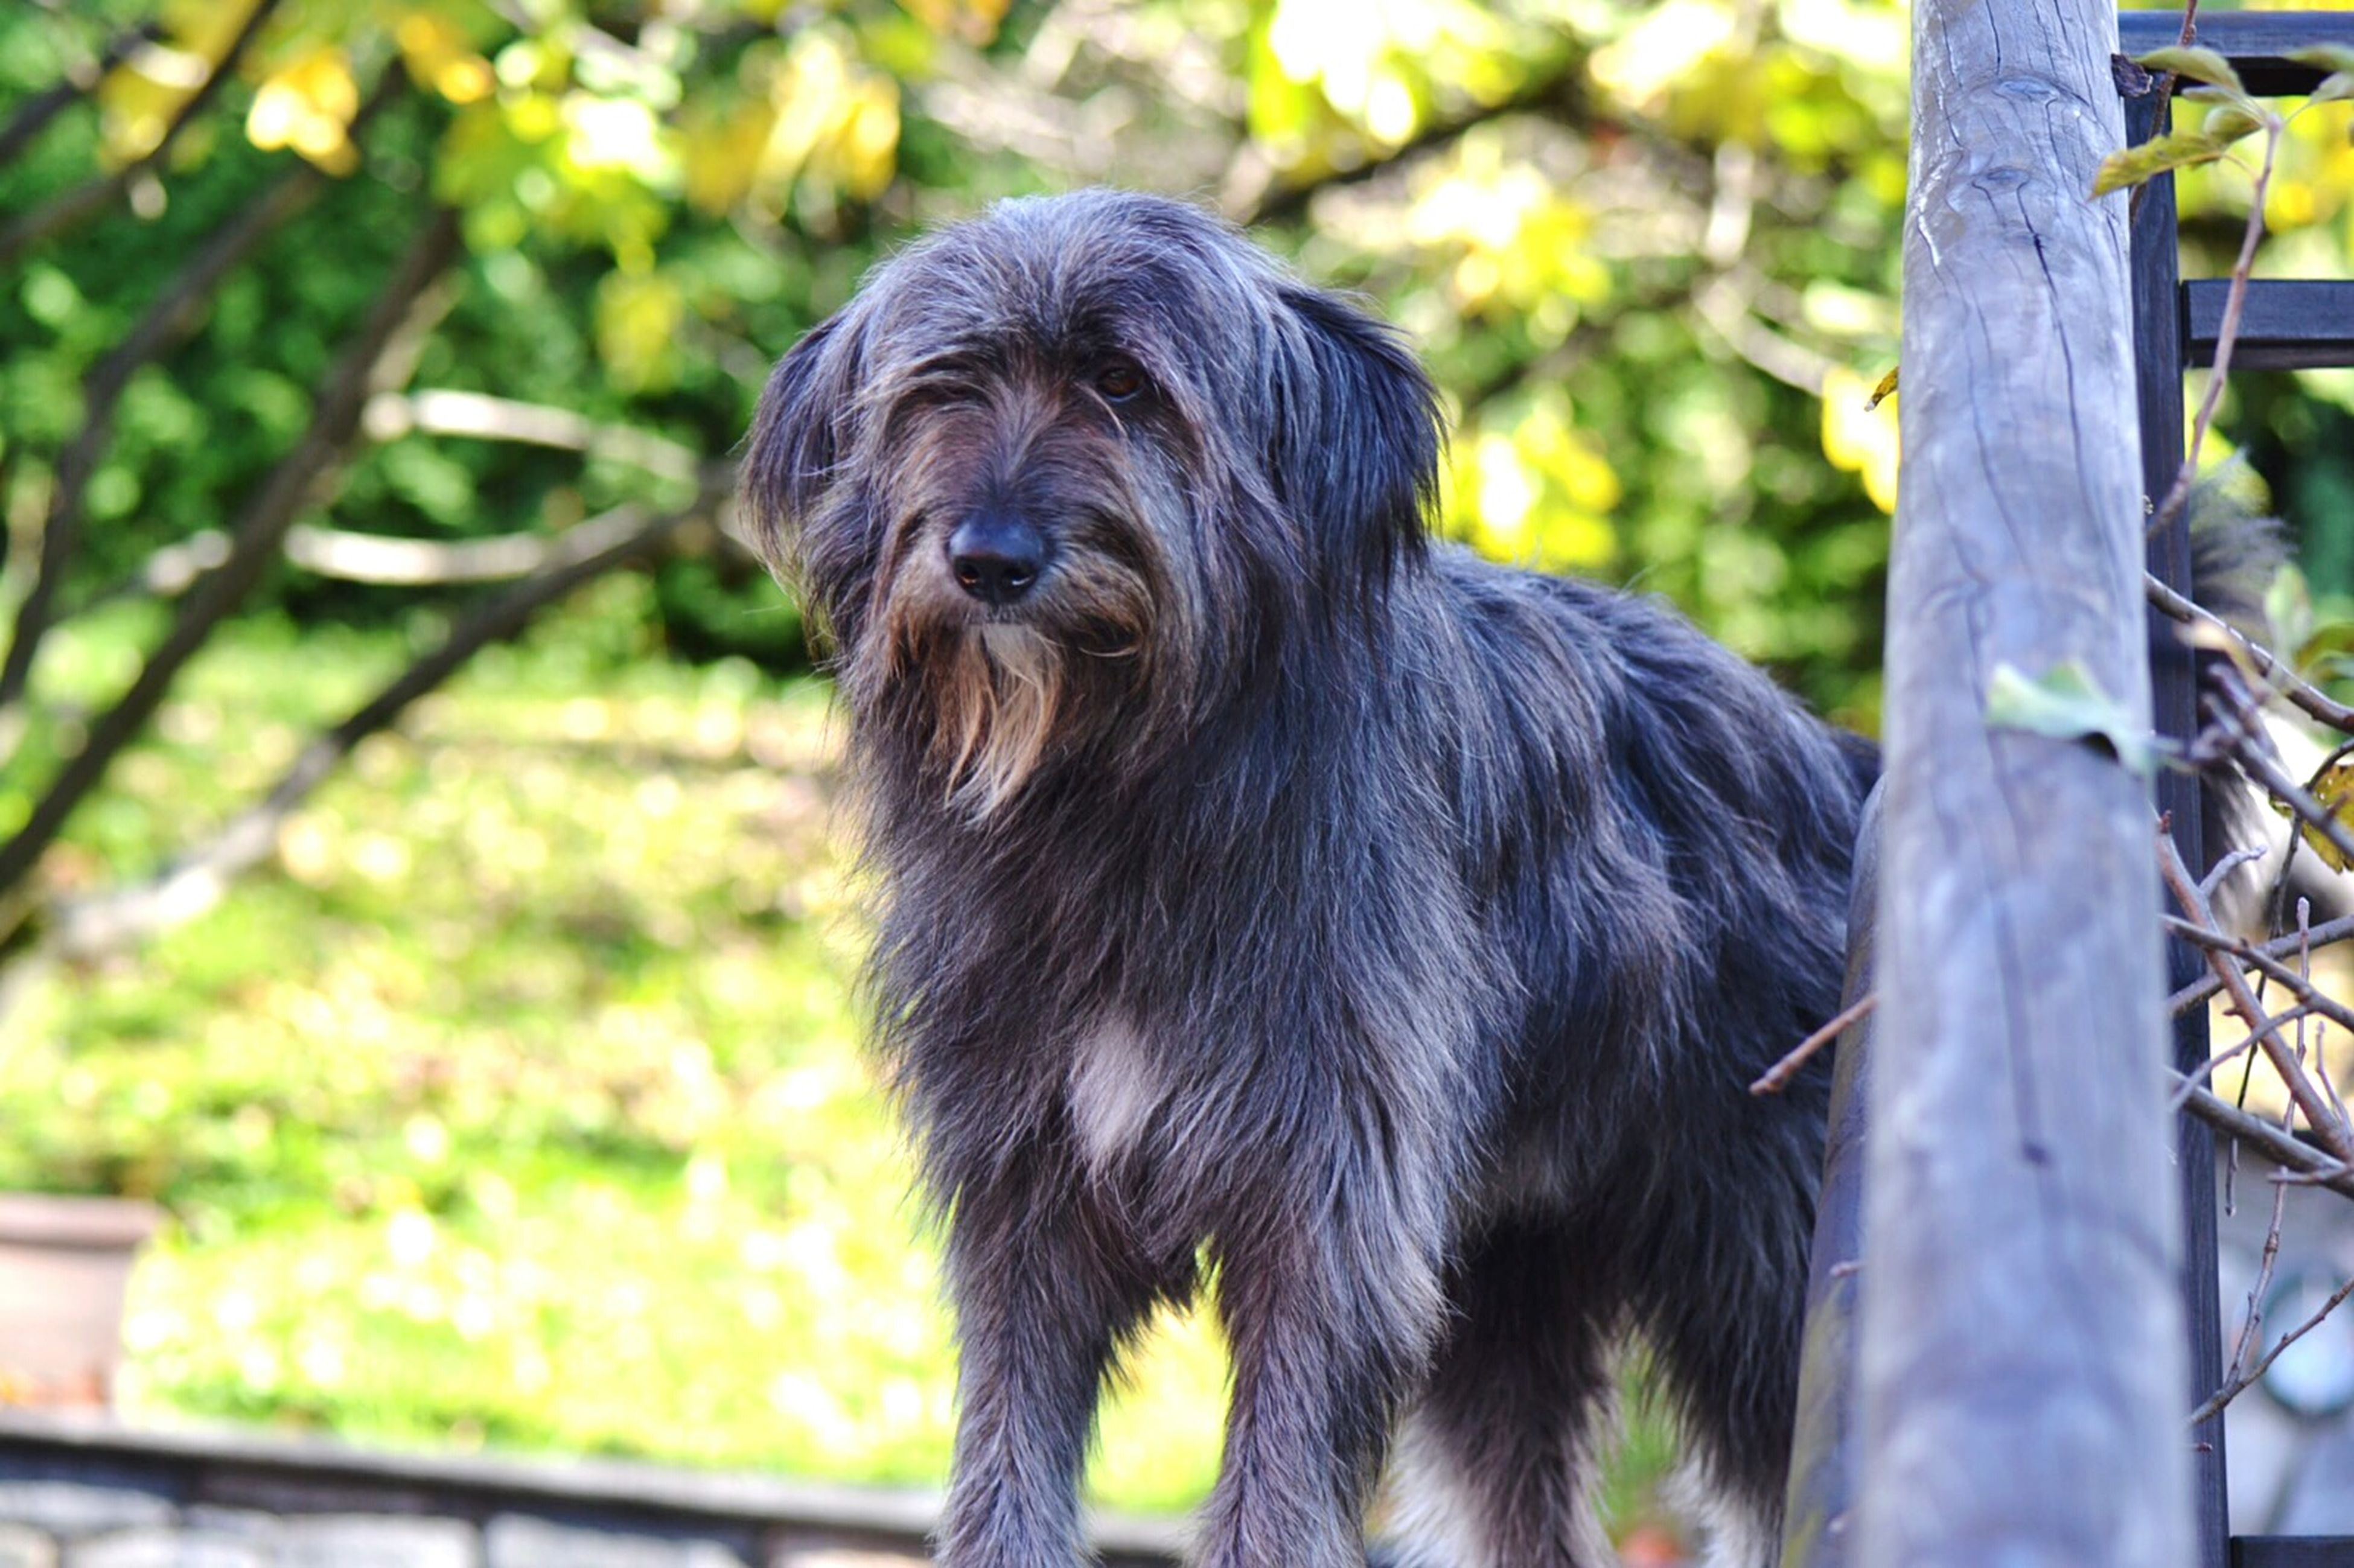 animal themes, one animal, mammal, domestic animals, focus on foreground, close-up, animal head, pets, looking away, tree, black color, no people, outdoors, standing, nature, day, fence, zoology, selective focus, dog